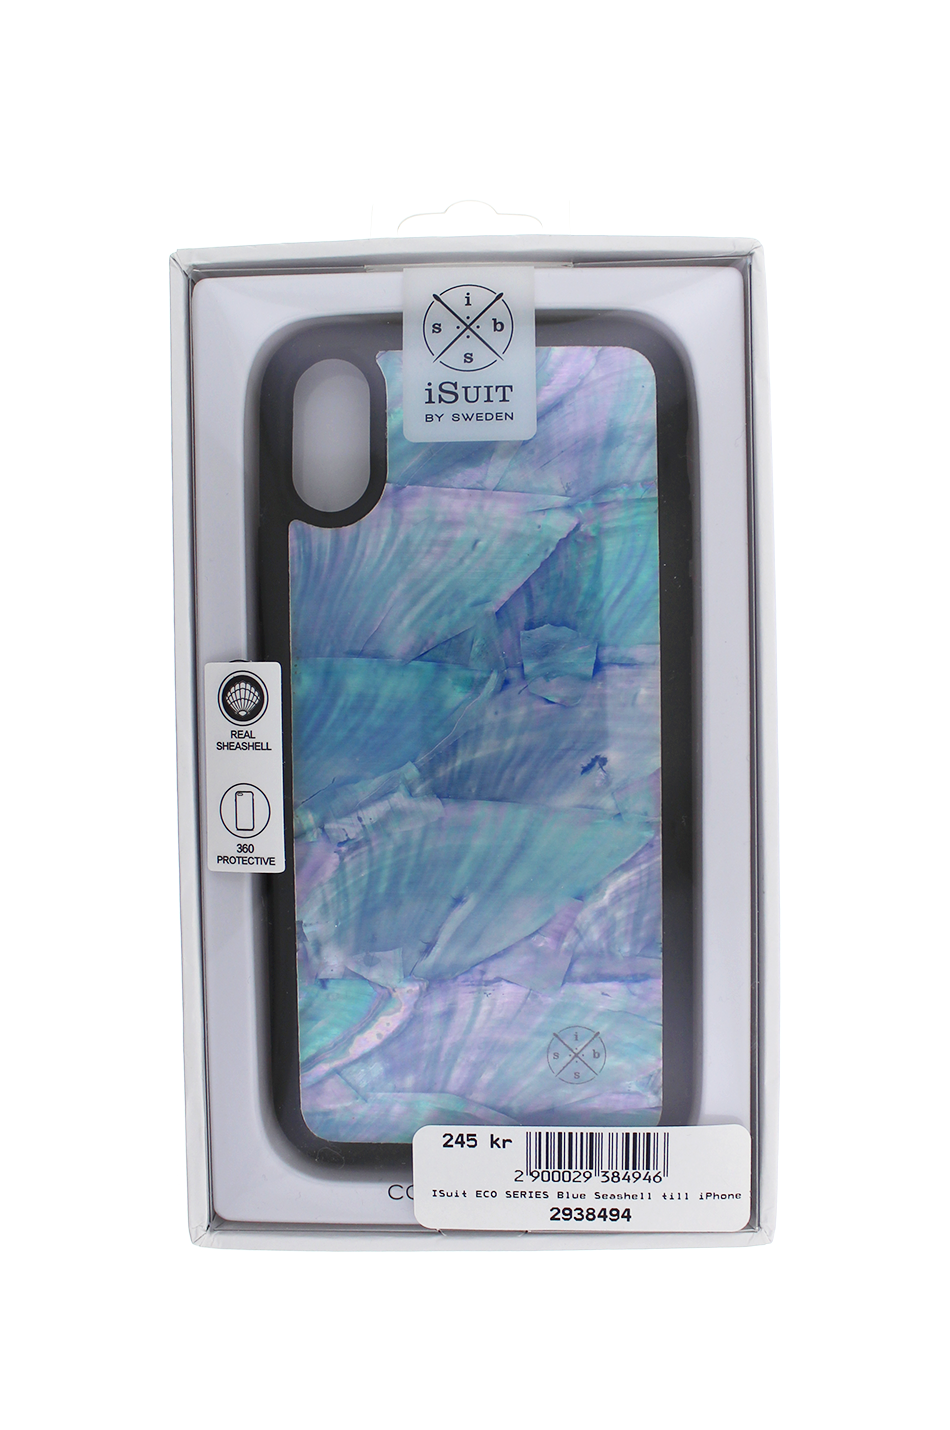 iSuit ECO SERIES Blue Seashell till iPhone X - Mobello ed25f2a1ac12c